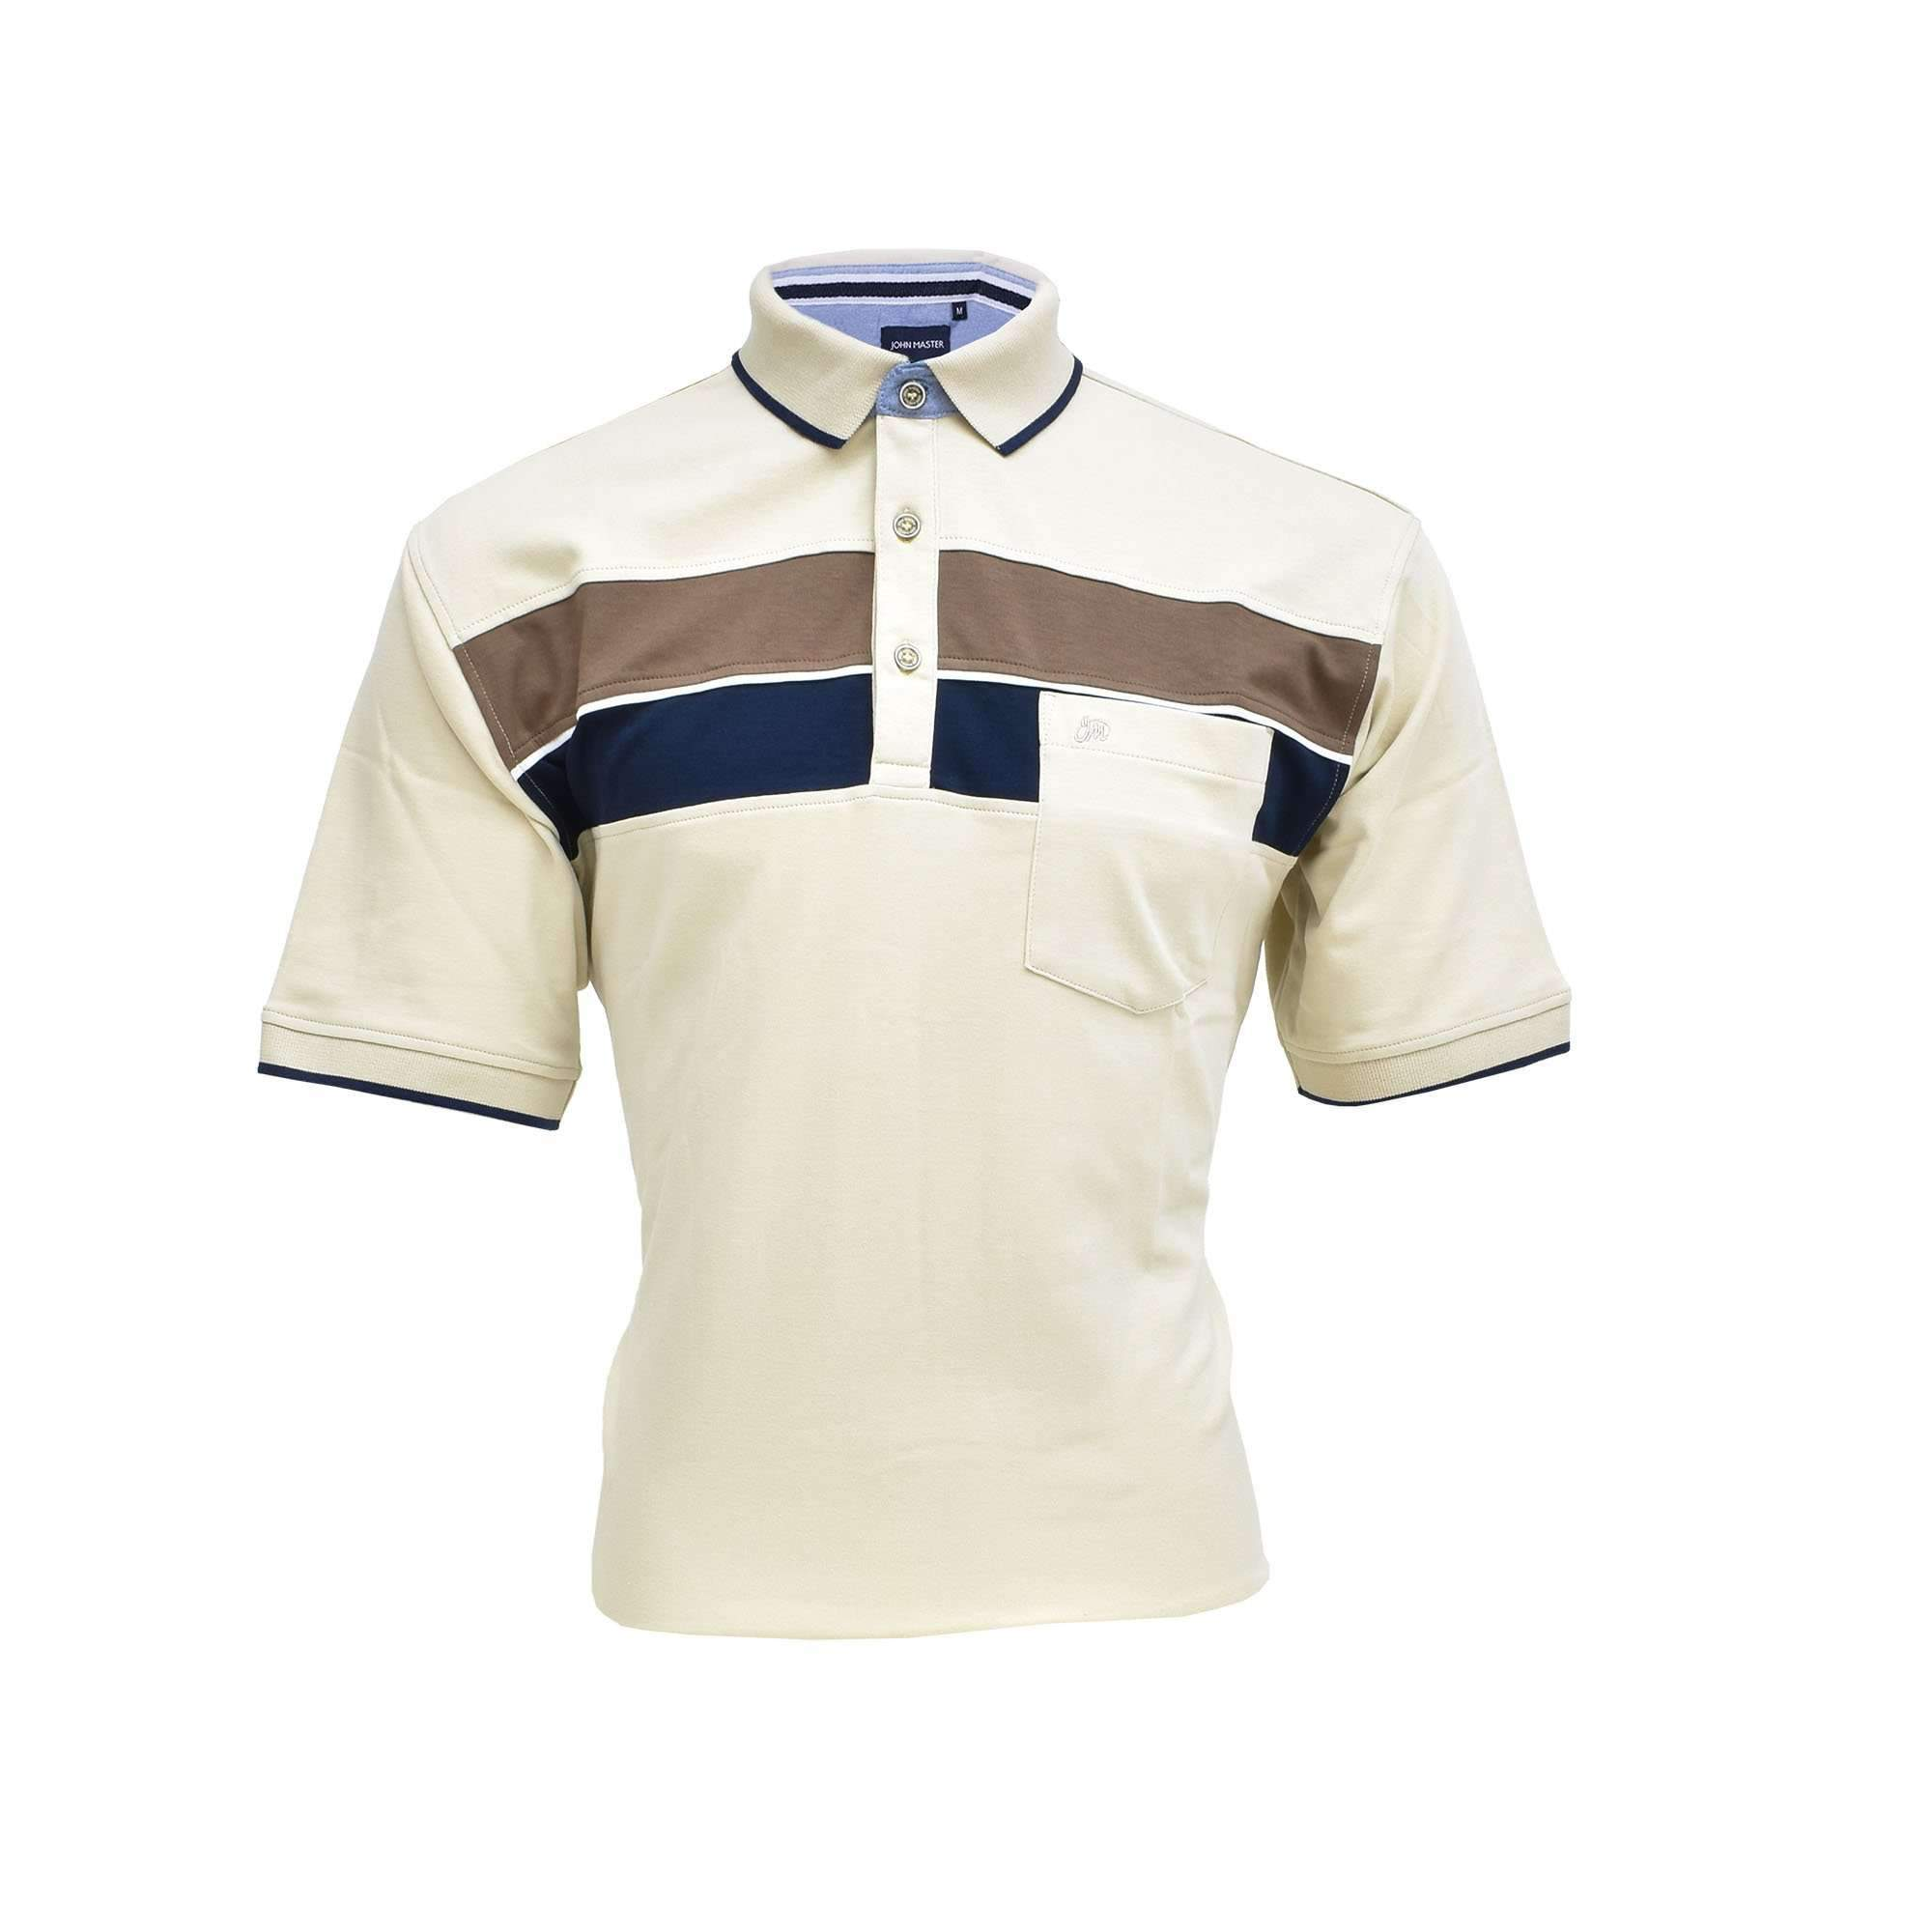 John Master Lifestyle Polo Khaki 8067000 : Buy John Master online at CMG.MY